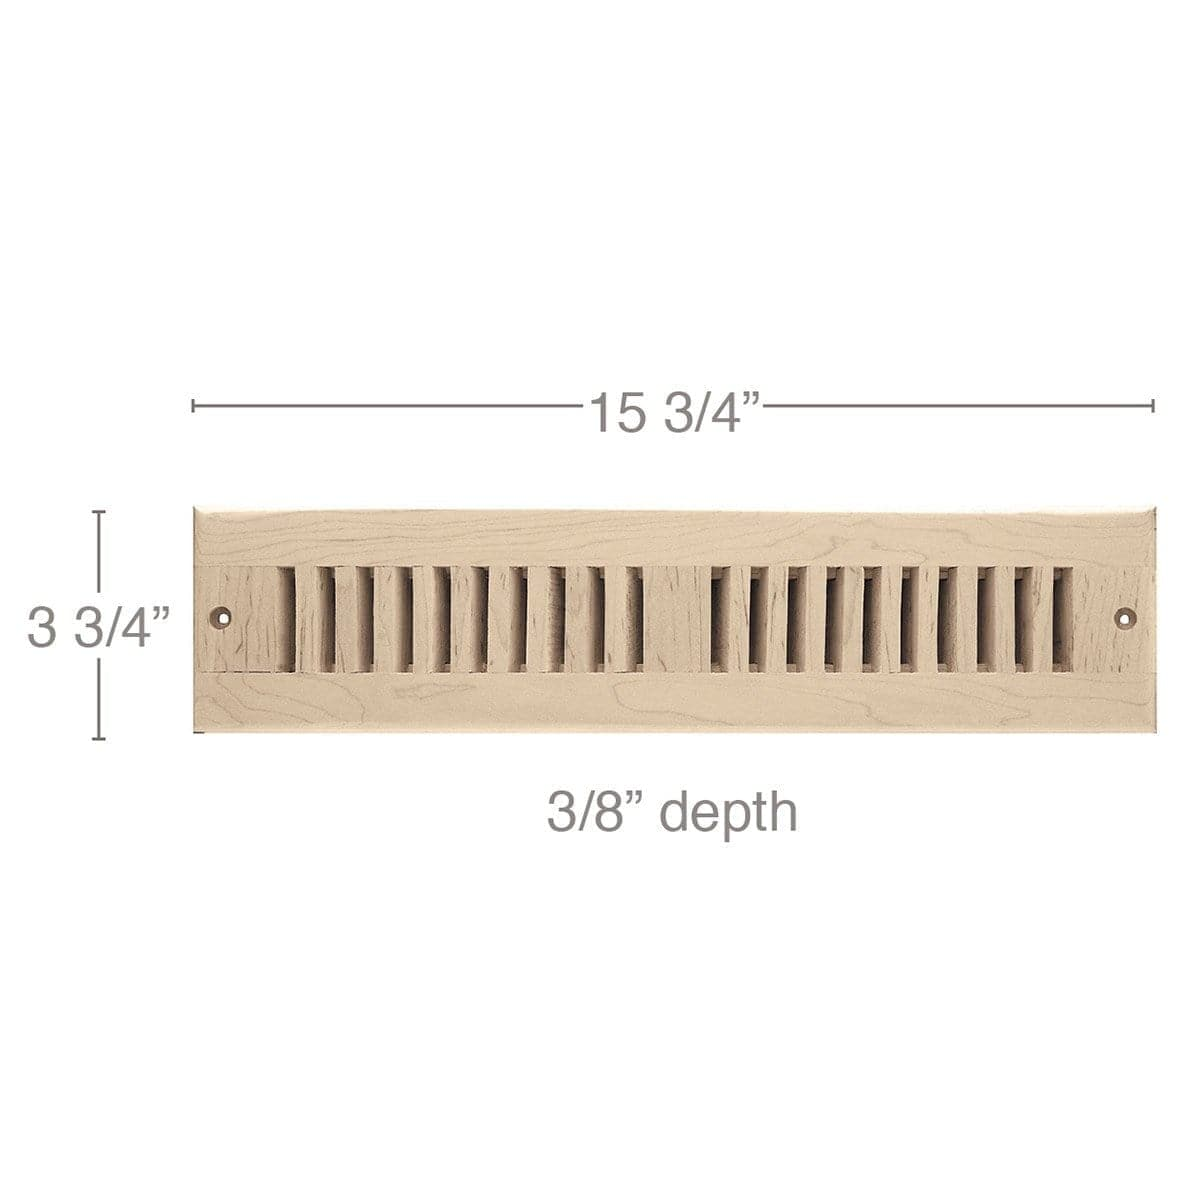 "2 x 14 Vent, 3 3/4"" x 3/8"" x 15 3/4"" length, Self Rimming Toe Kick Vent"